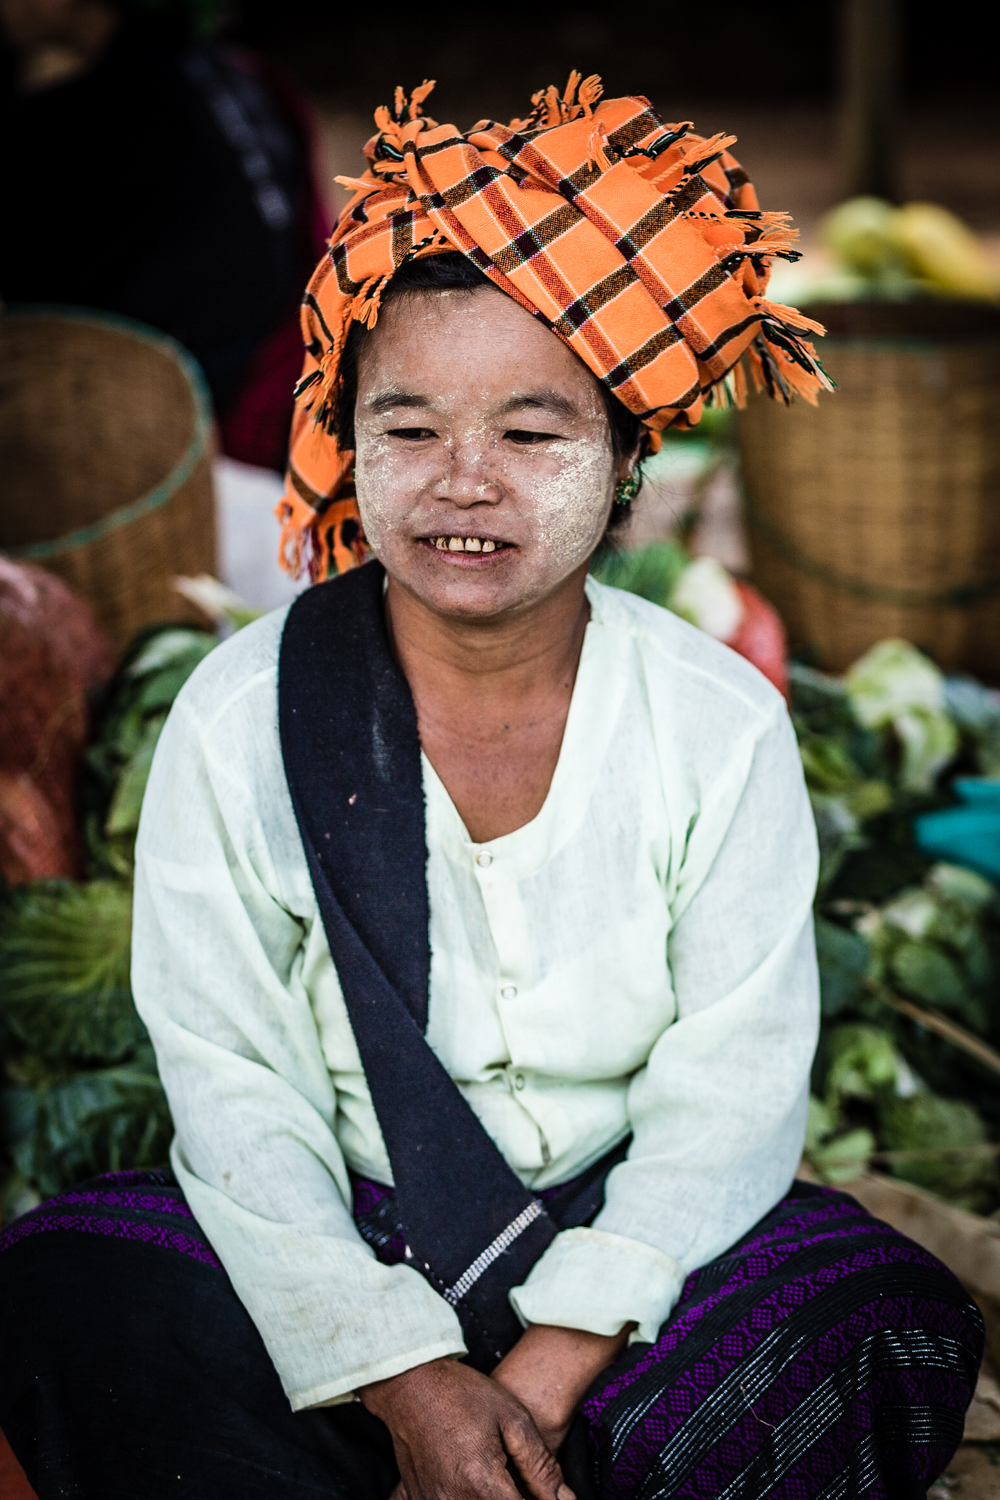 The Burmese apply Thanaka, a paste made from bark, to protect against the sun.